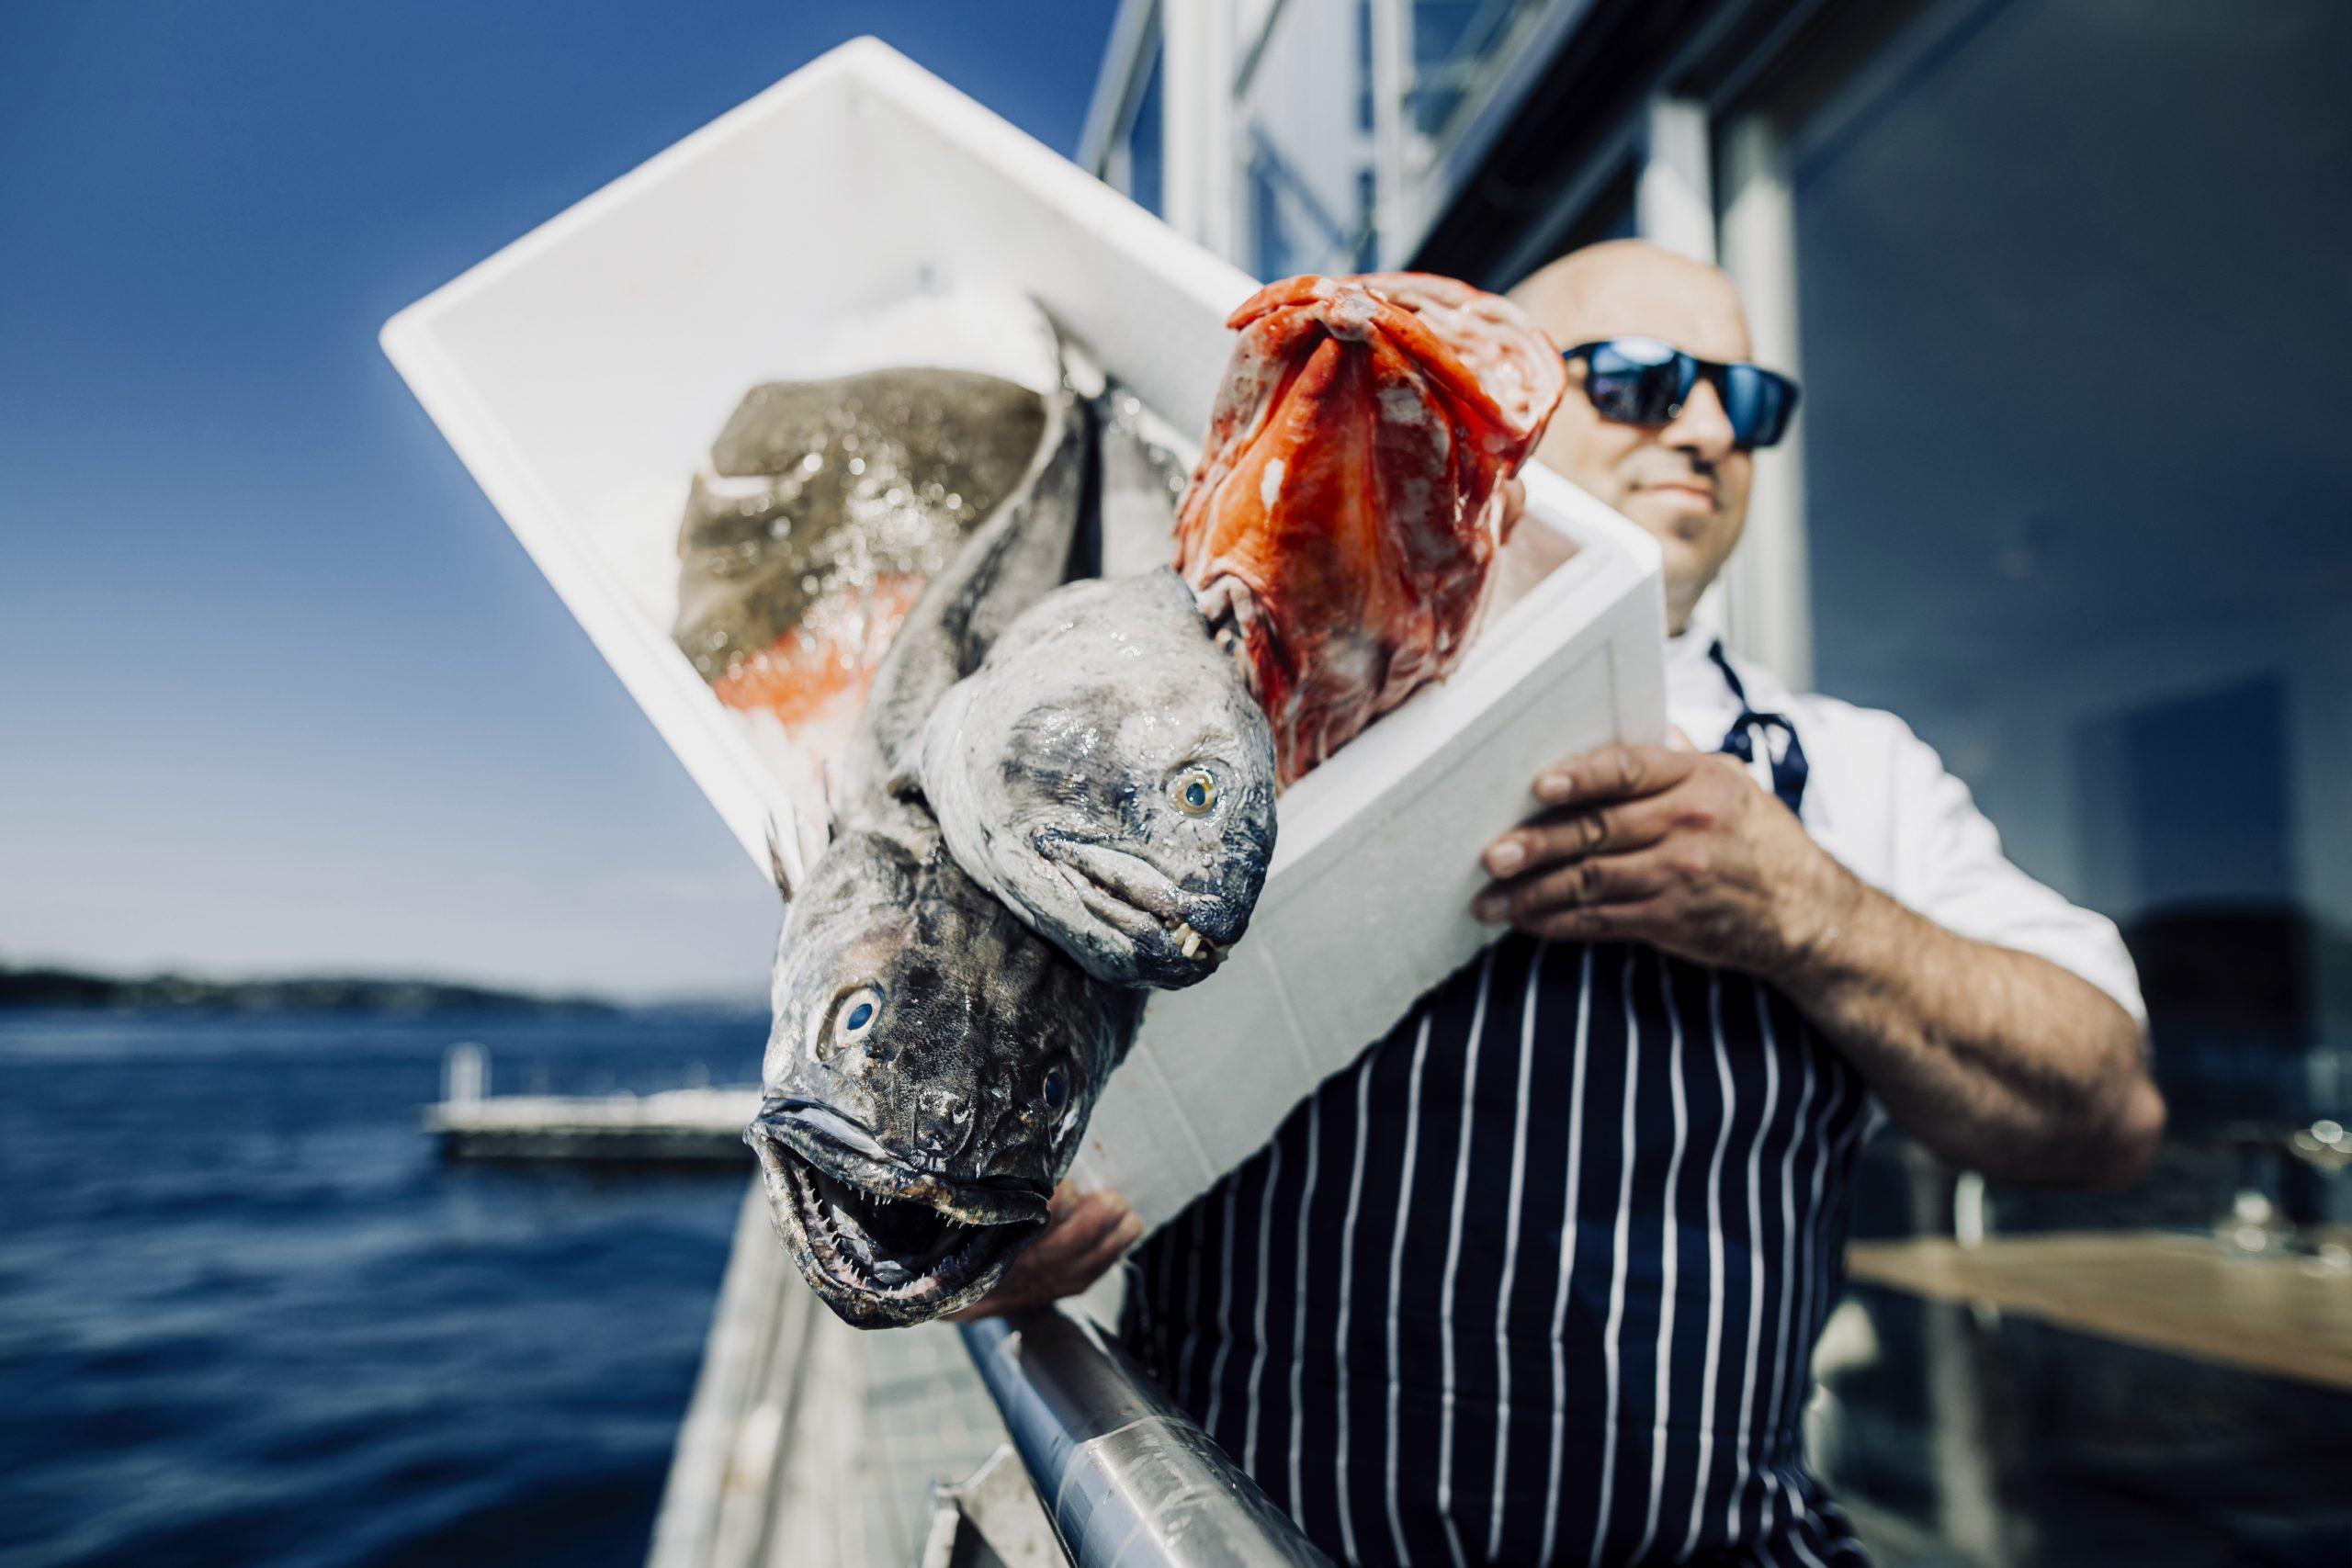 Chef carrying seafood in polystyrene box